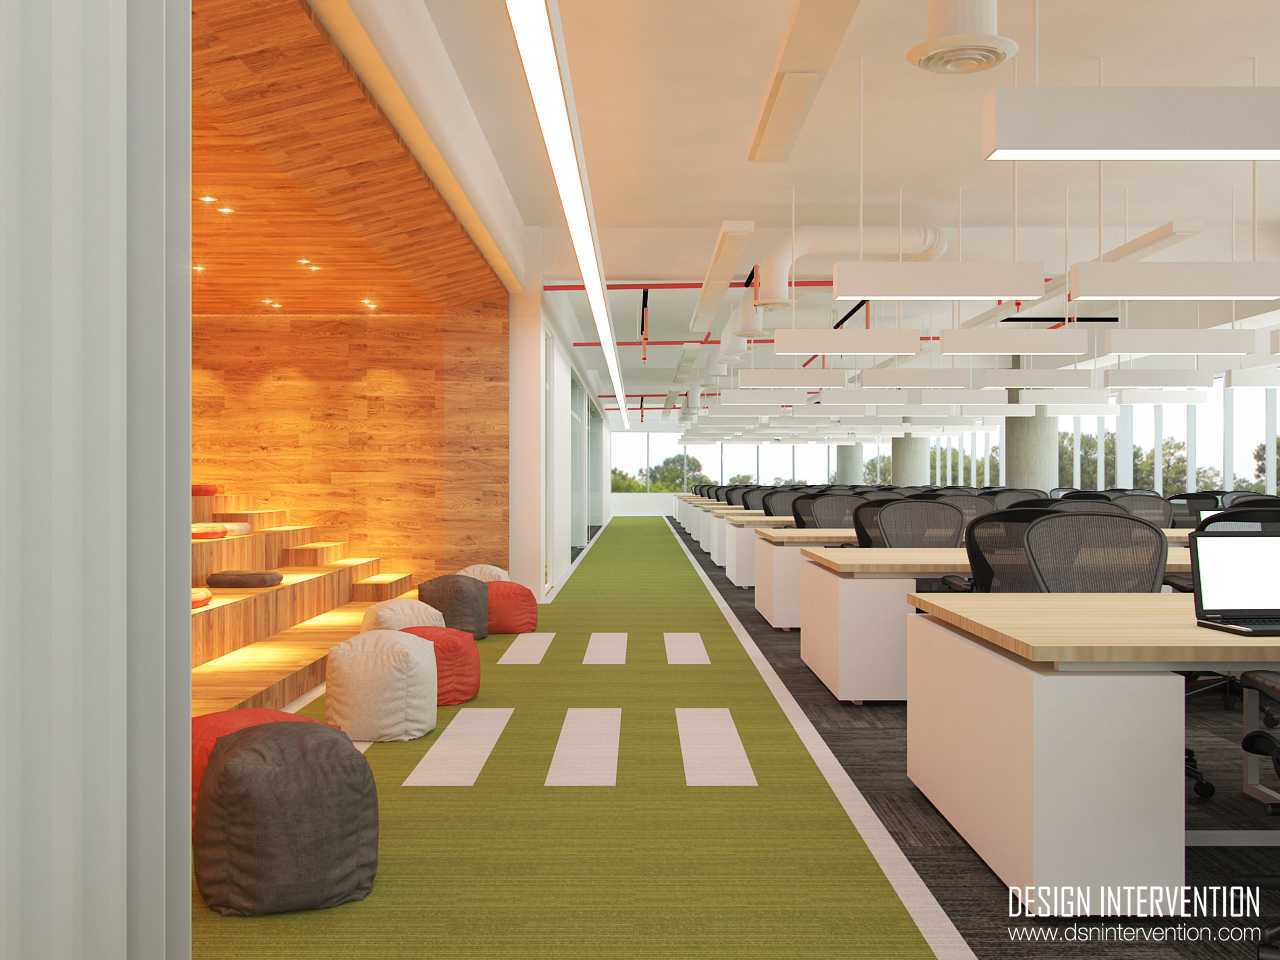 Design Intervention B - Office Concept Bsd Office Park Bsd Office Park Workspace  13969